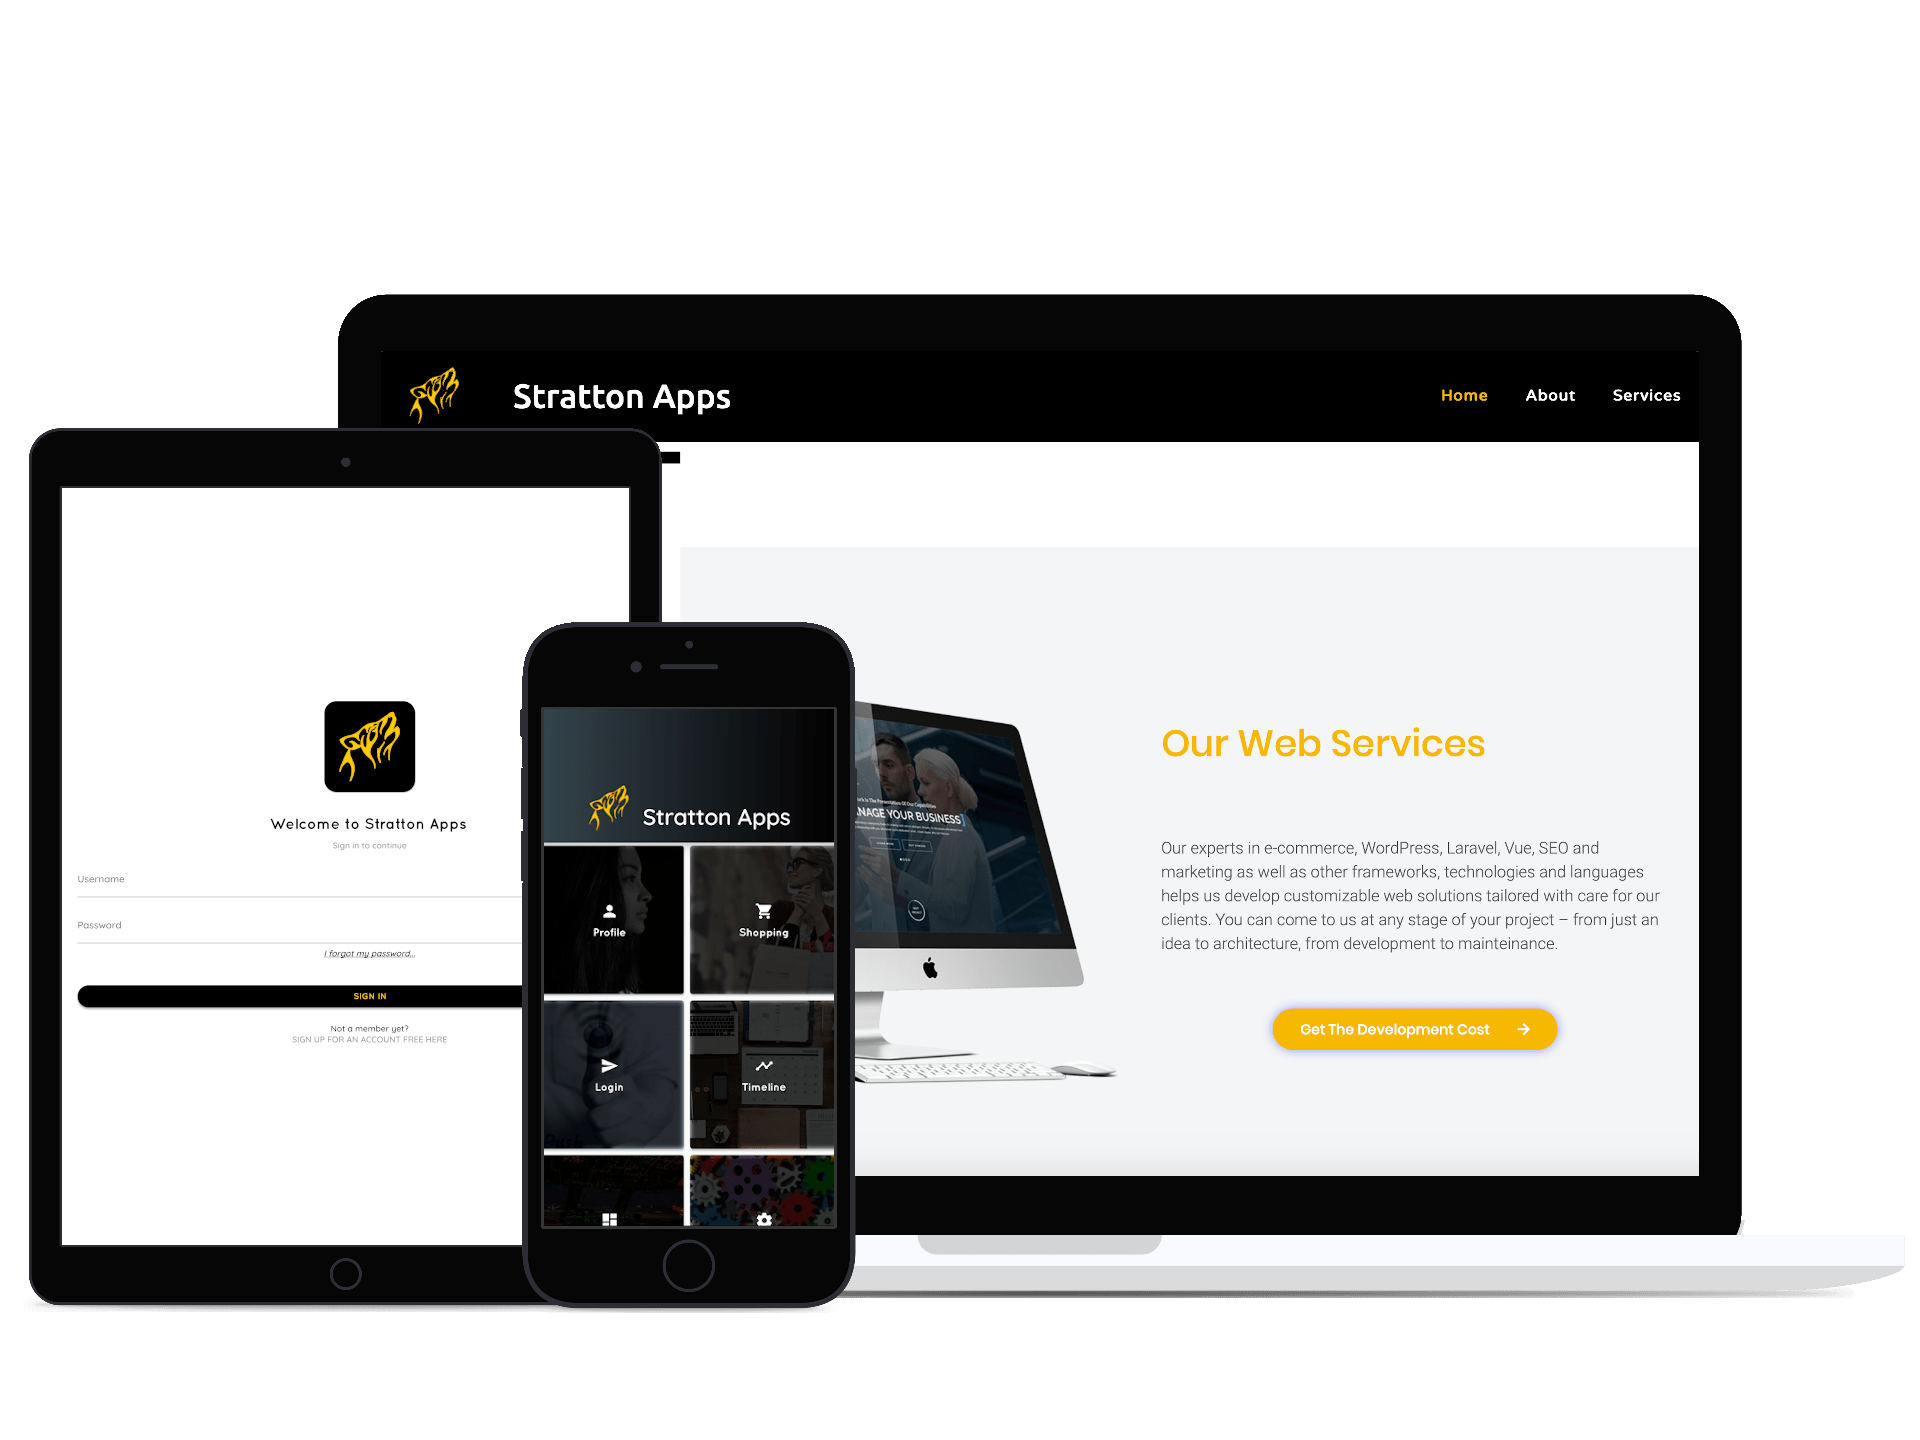 Stratton Apps, mobile & web app solutions